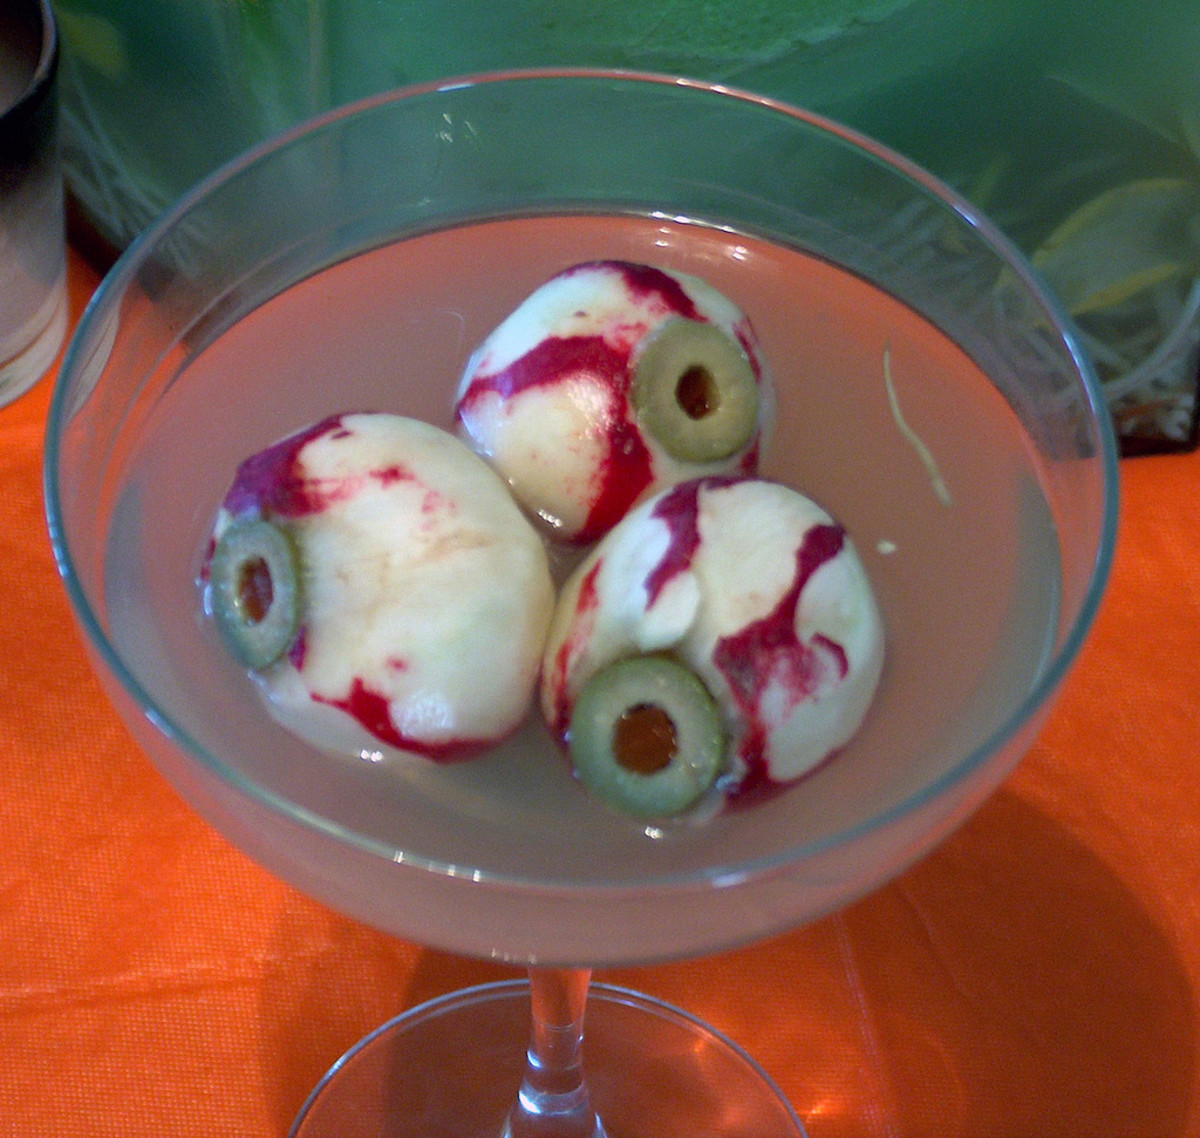 Would you like eyeballs in that martini?